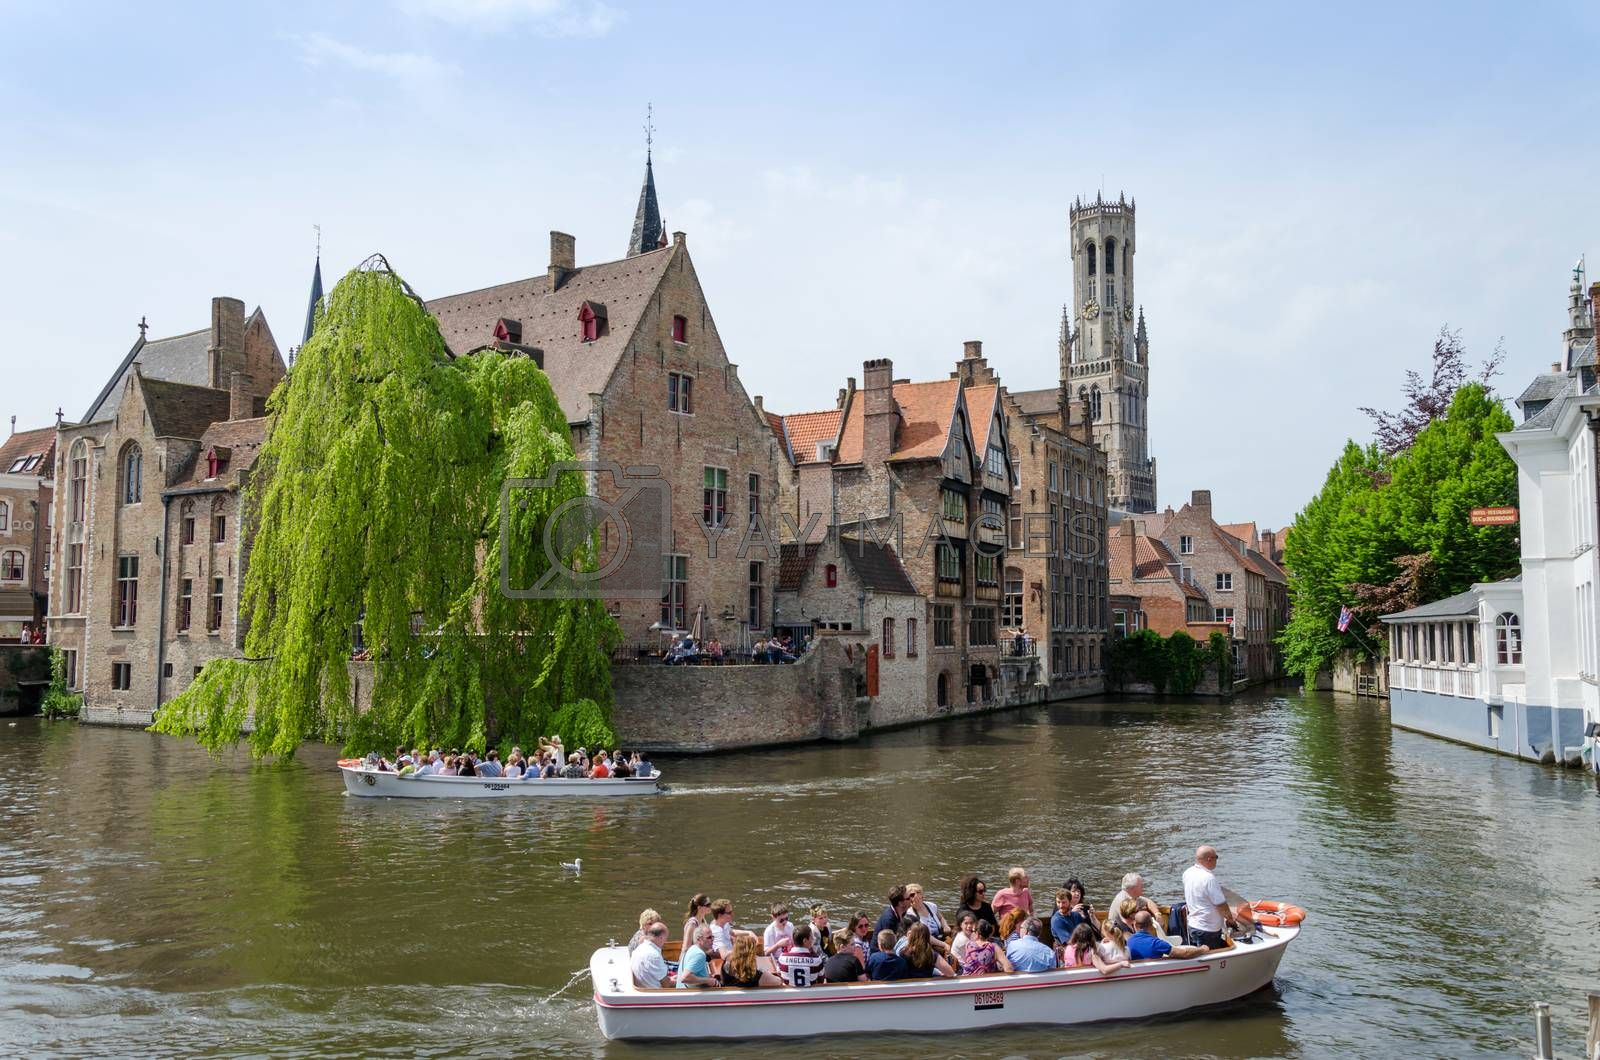 Royalty free image of Bruges, Belgium - May 11, 2015: Tourist visit Rozenhoedkaai in Bruges, Belgium by siraanamwong